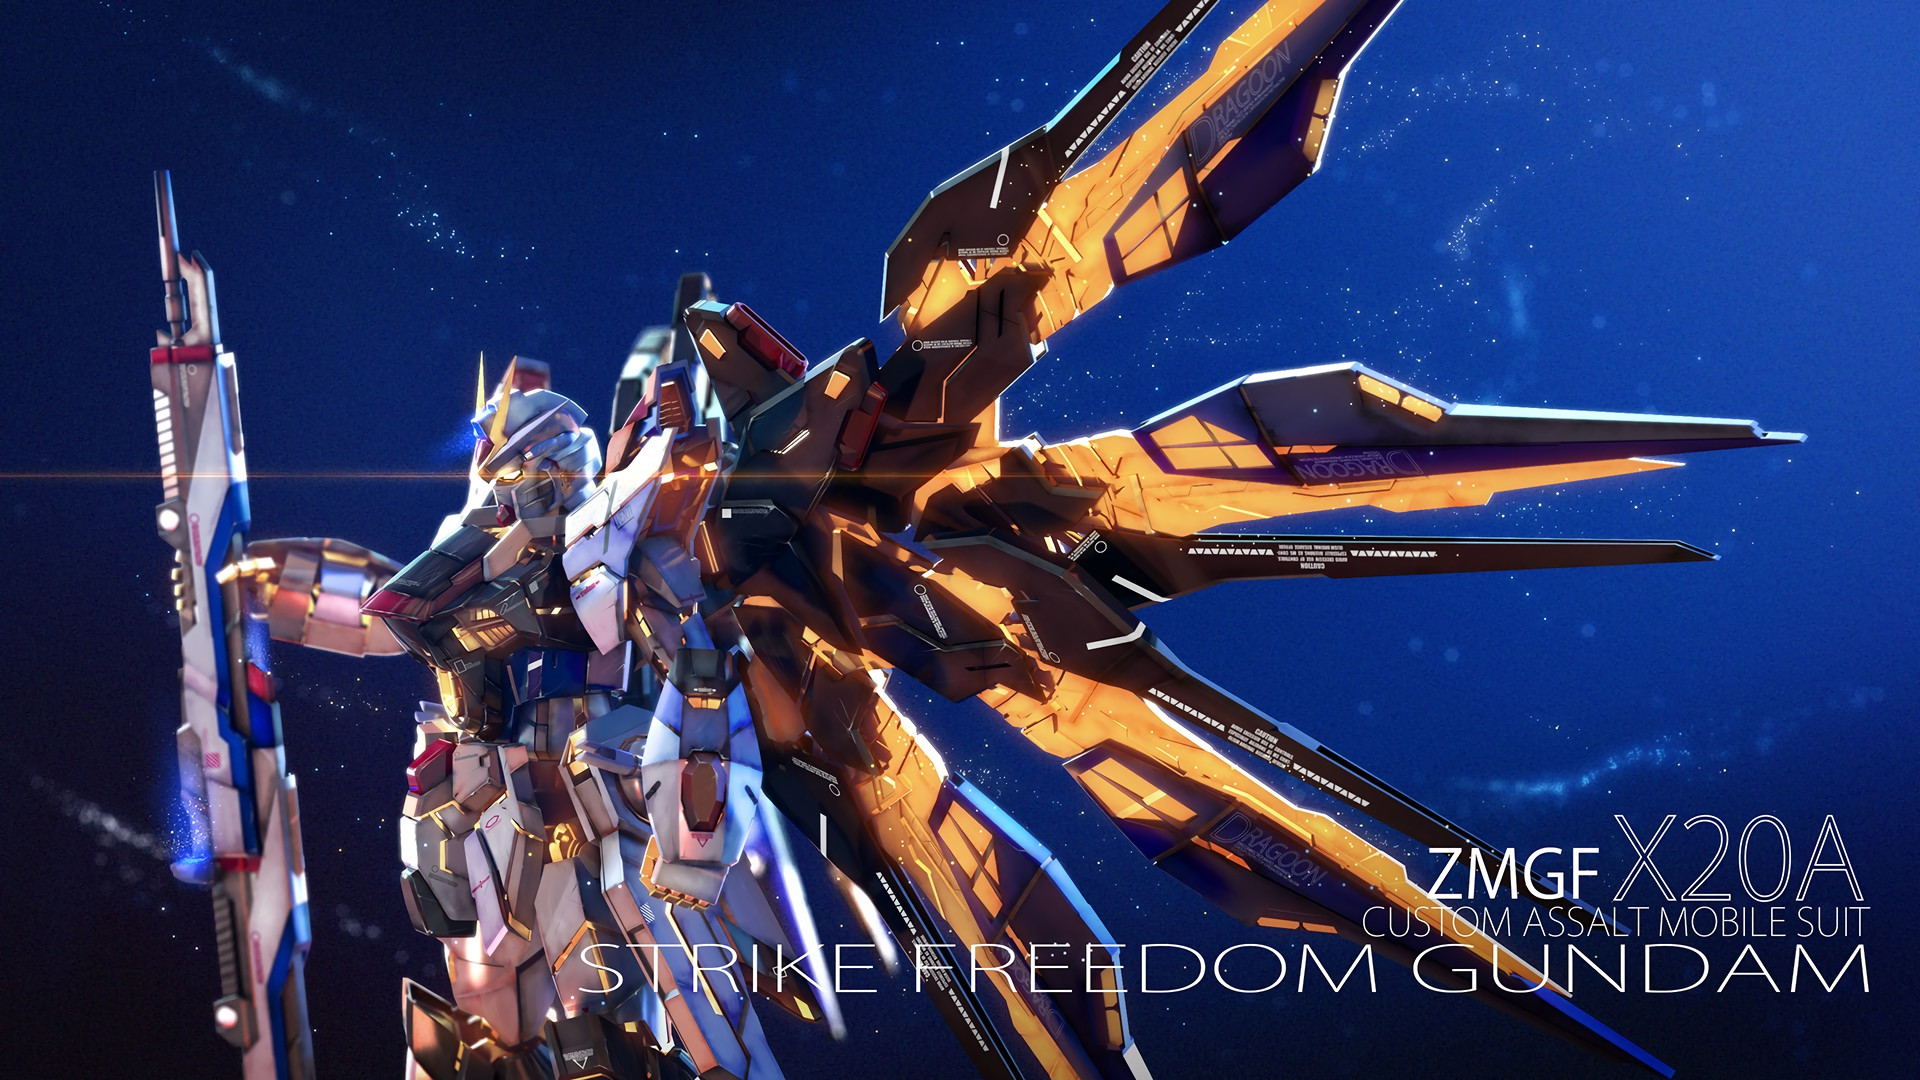 1920x1080 Mobile Suit Gundam Seed Destiny HD Wallpaper | Background Image |   | ID:715067 - Wallpaper Abyss